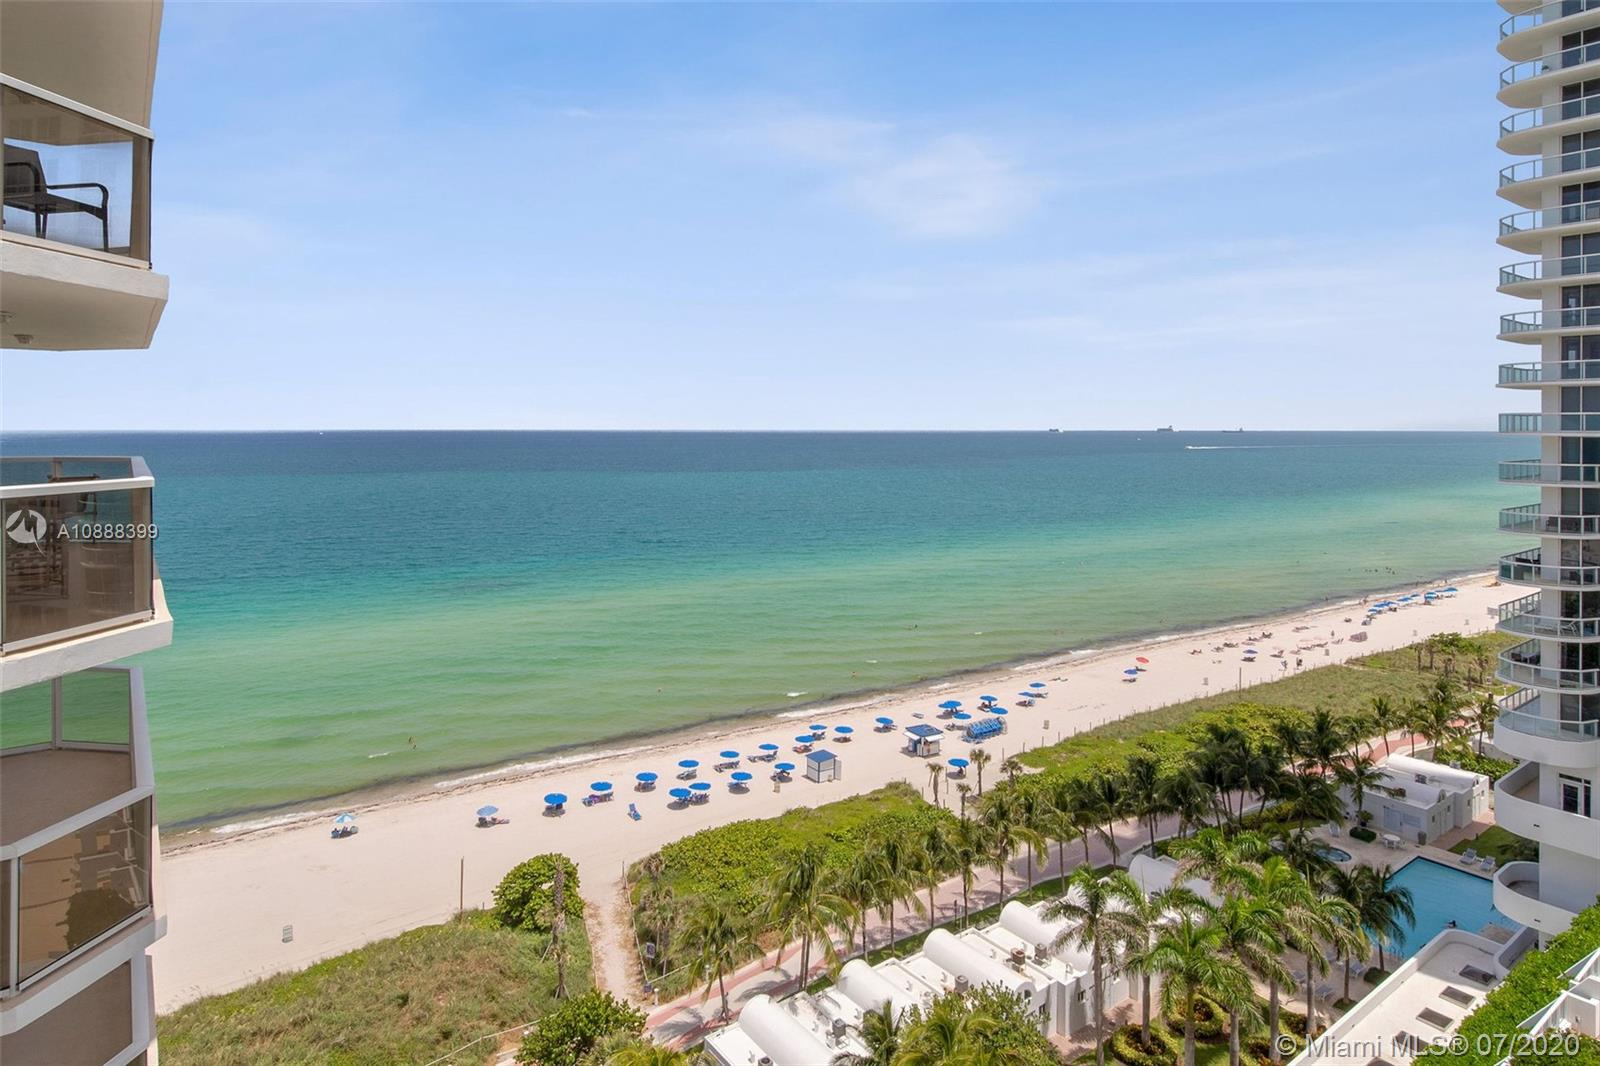 6423 Collins Ave #1504 Property Photo